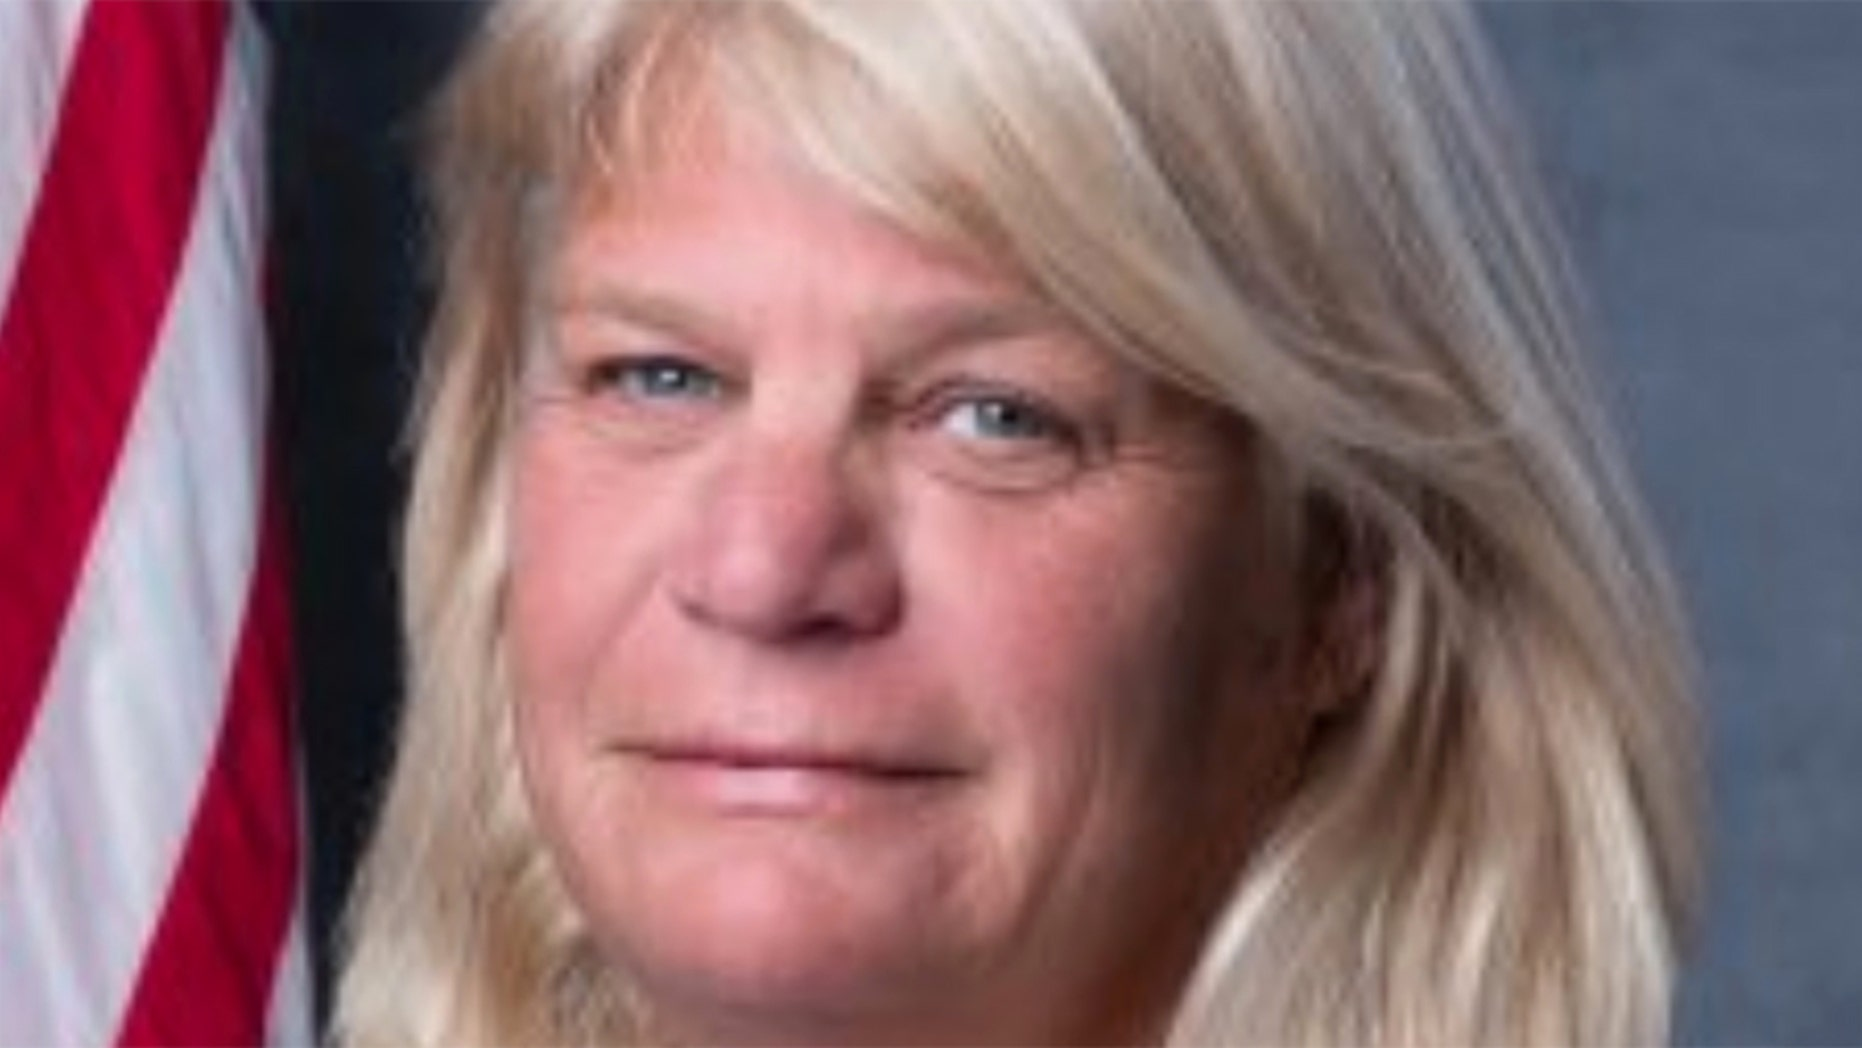 Madeira Beach City Commissioner Nancy Oakley submitted her resignation after the Florida Commission on Ethics alleged she licked another city official's face and neck before groping him.